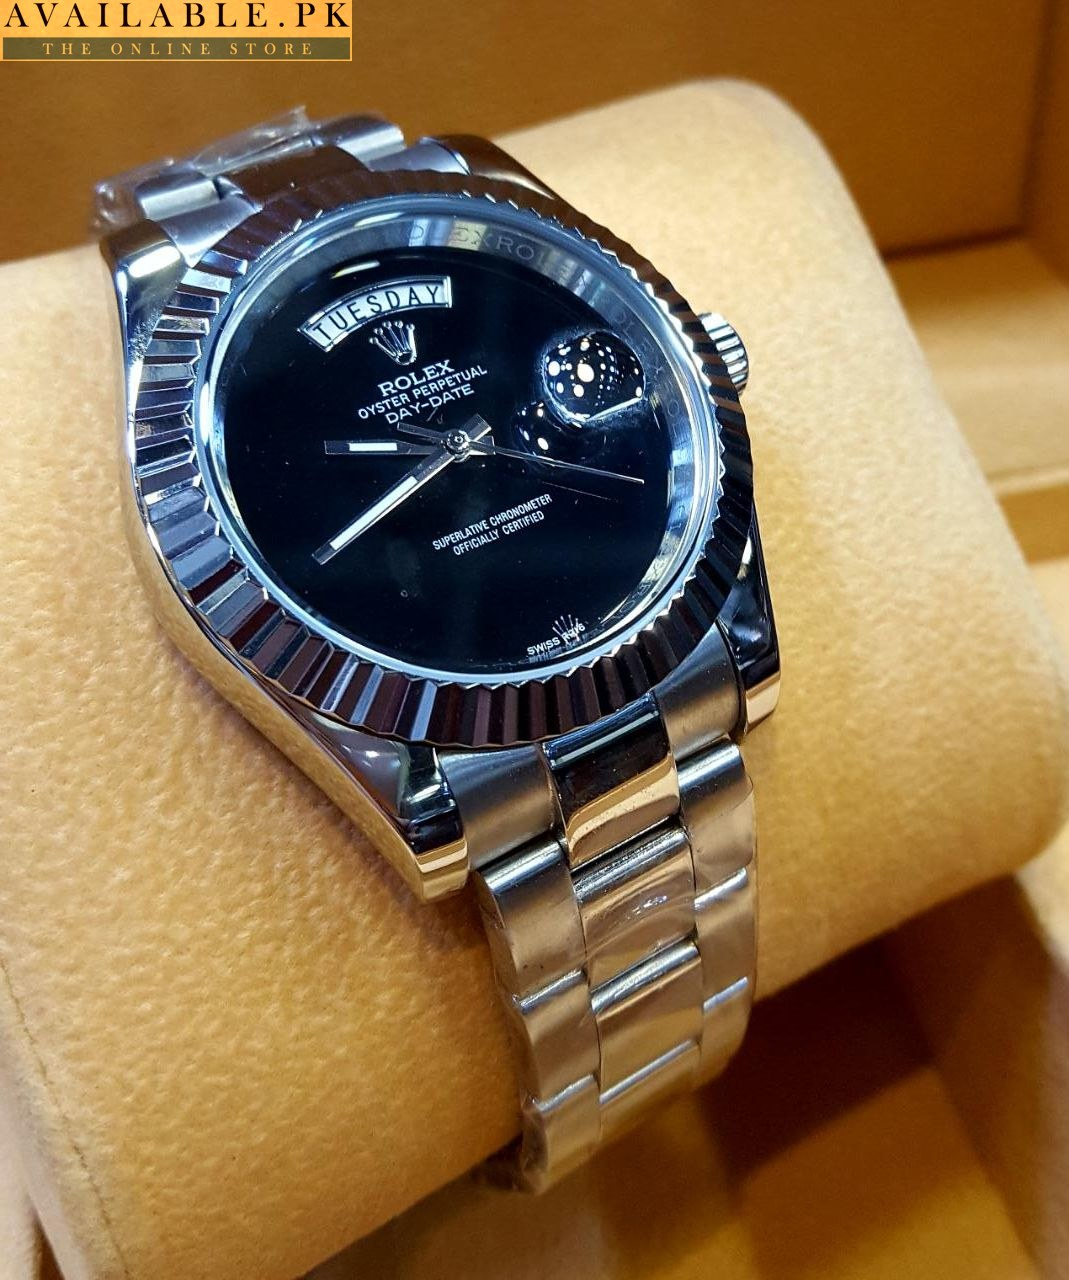 Rolex Day Date Automatic Watch Digitless Black Dial 530